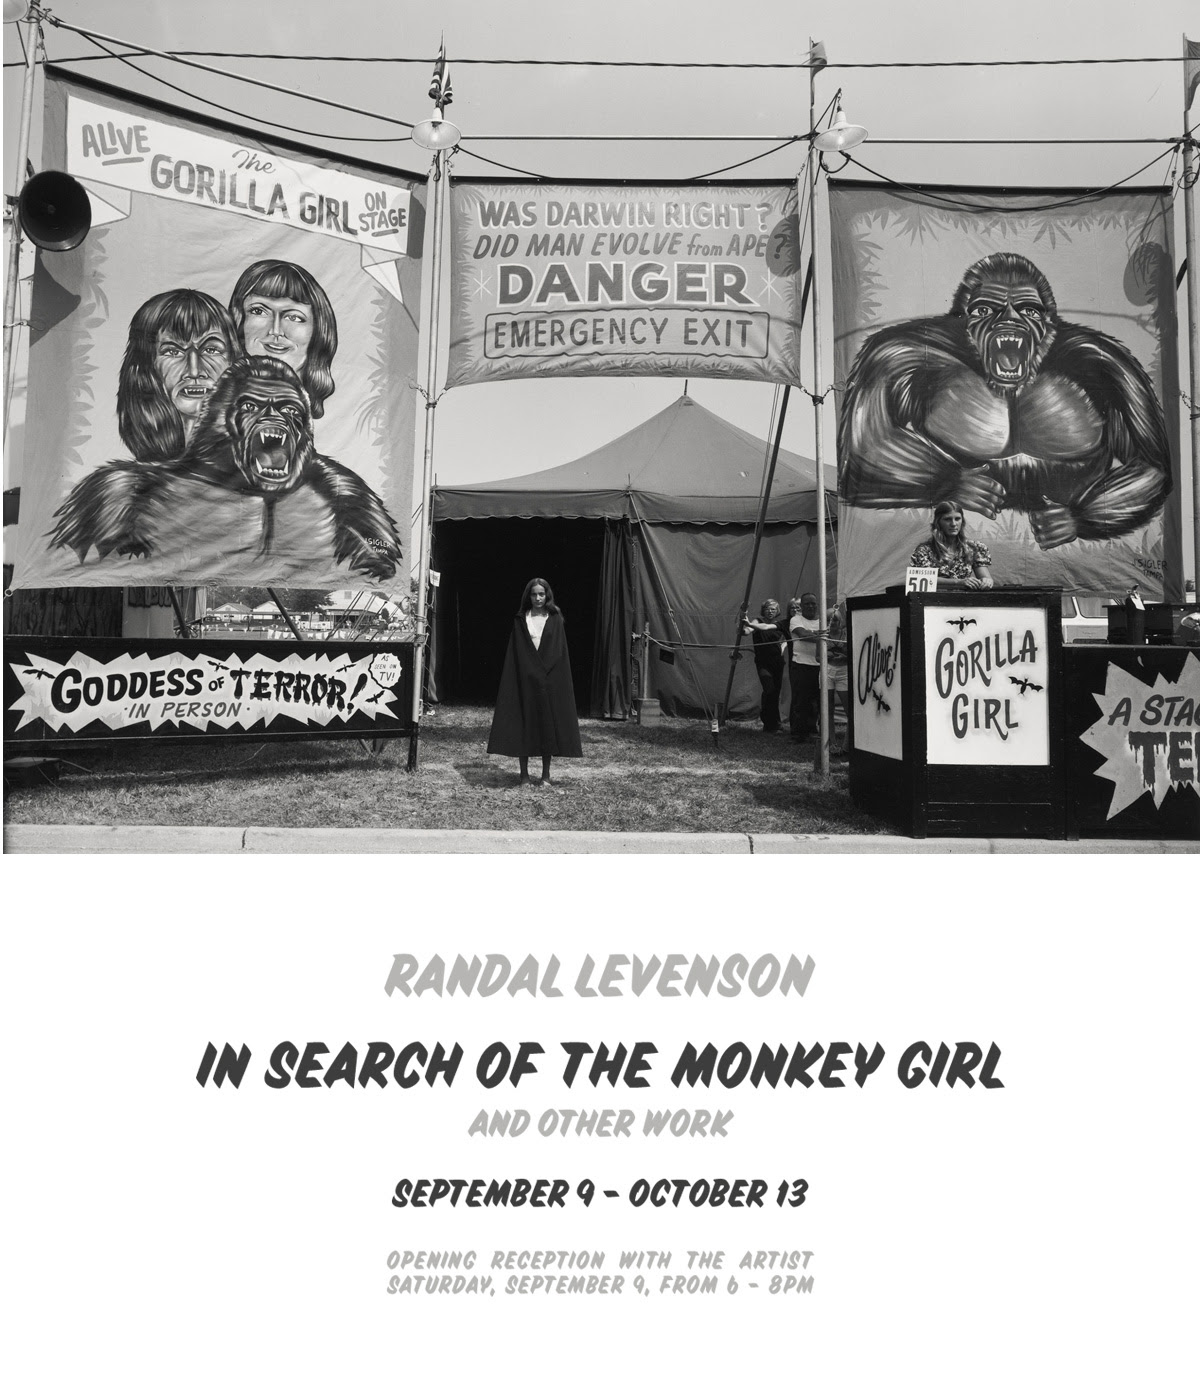 In Search of the Monkey Girl